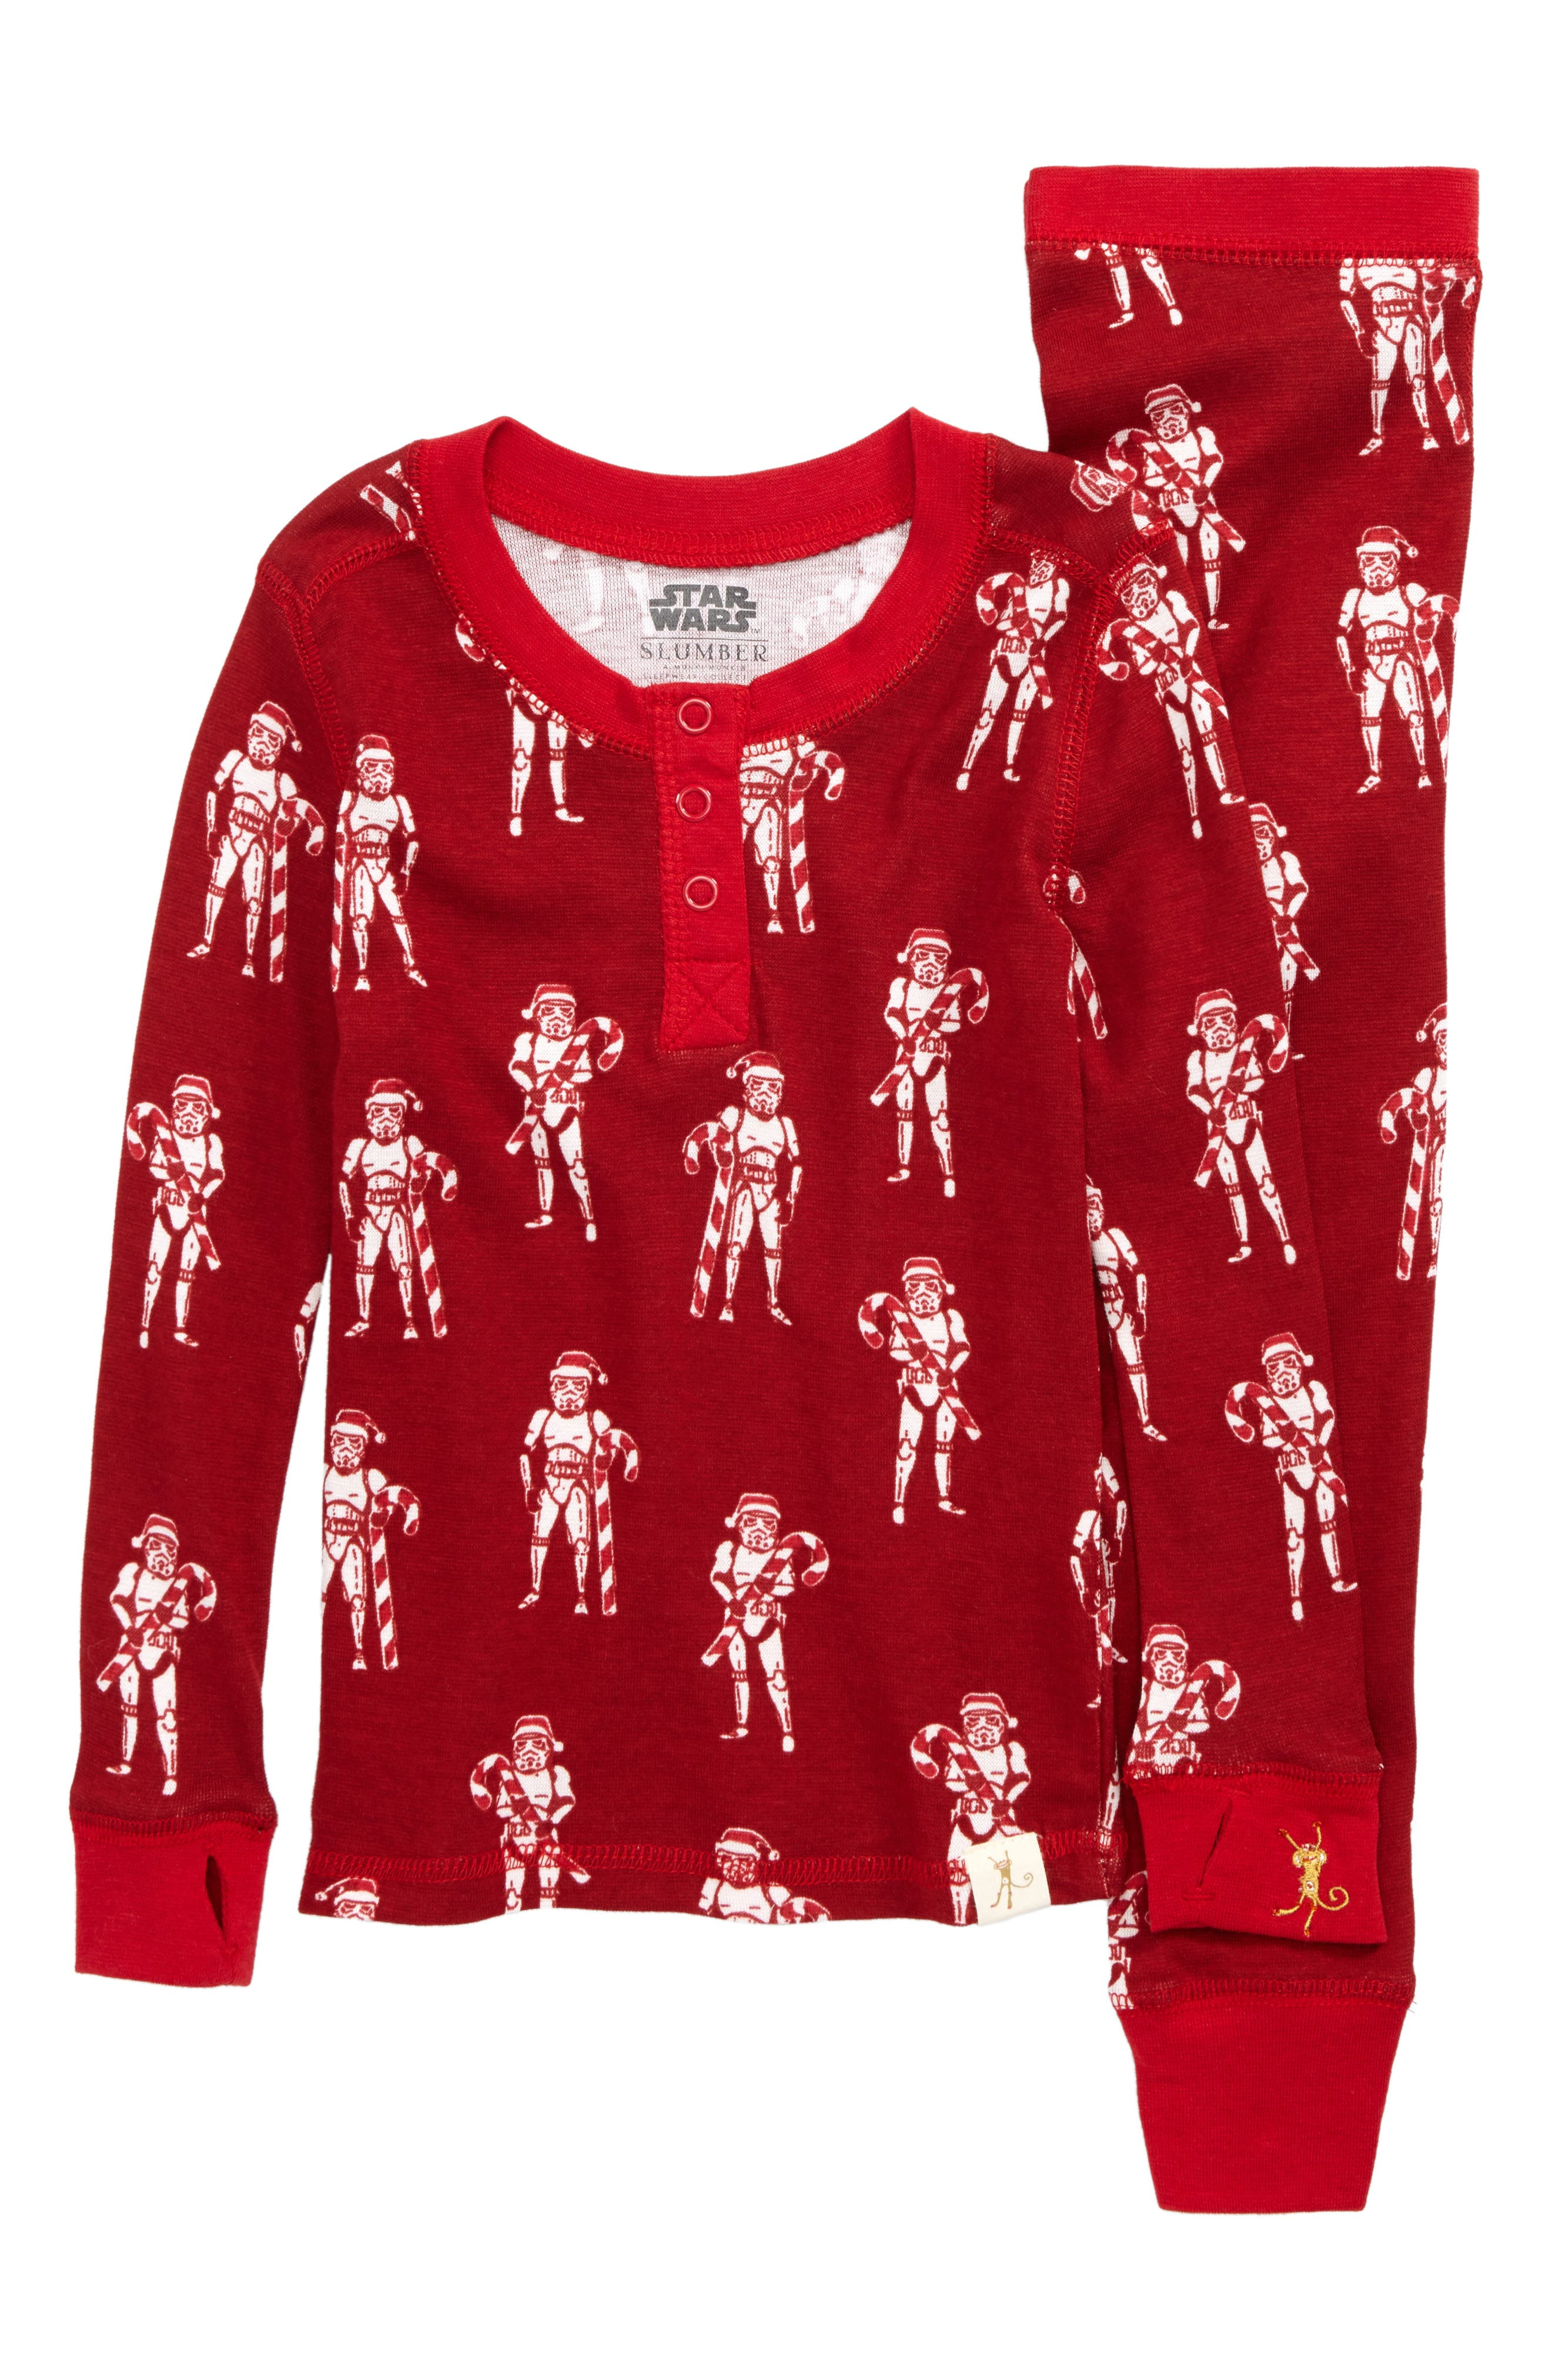 Star Wars<sup>™</sup> - Stormtroopers Fitted Two-Piece Pajamas,                             Main thumbnail 1, color,                             600